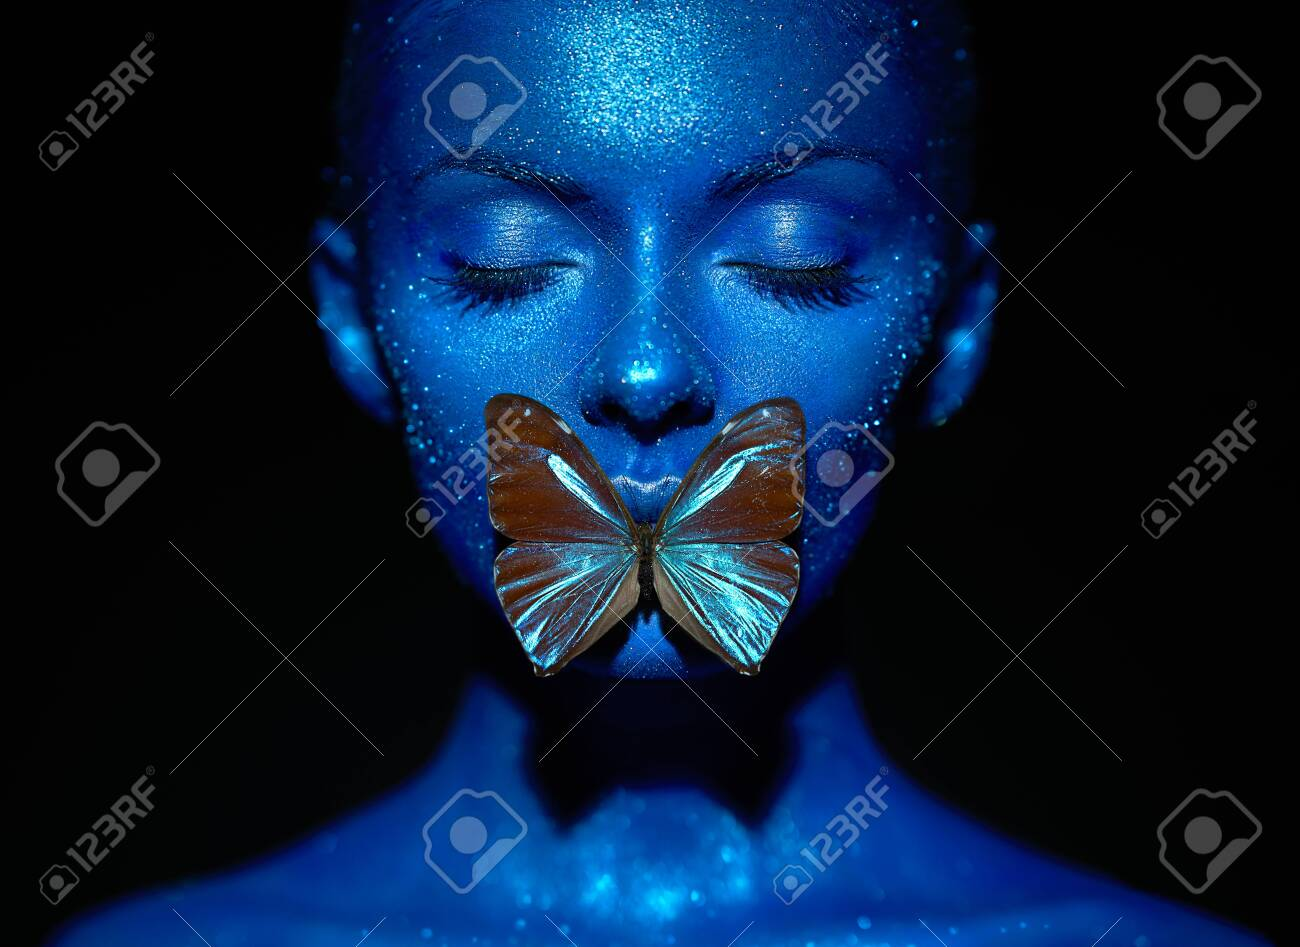 Fashion model woman in blue bright sparkles and neon lights posing in studio. Portrait of beautiful woman with blue butterfly. Art design colorful glitter glowing make up - 127785142